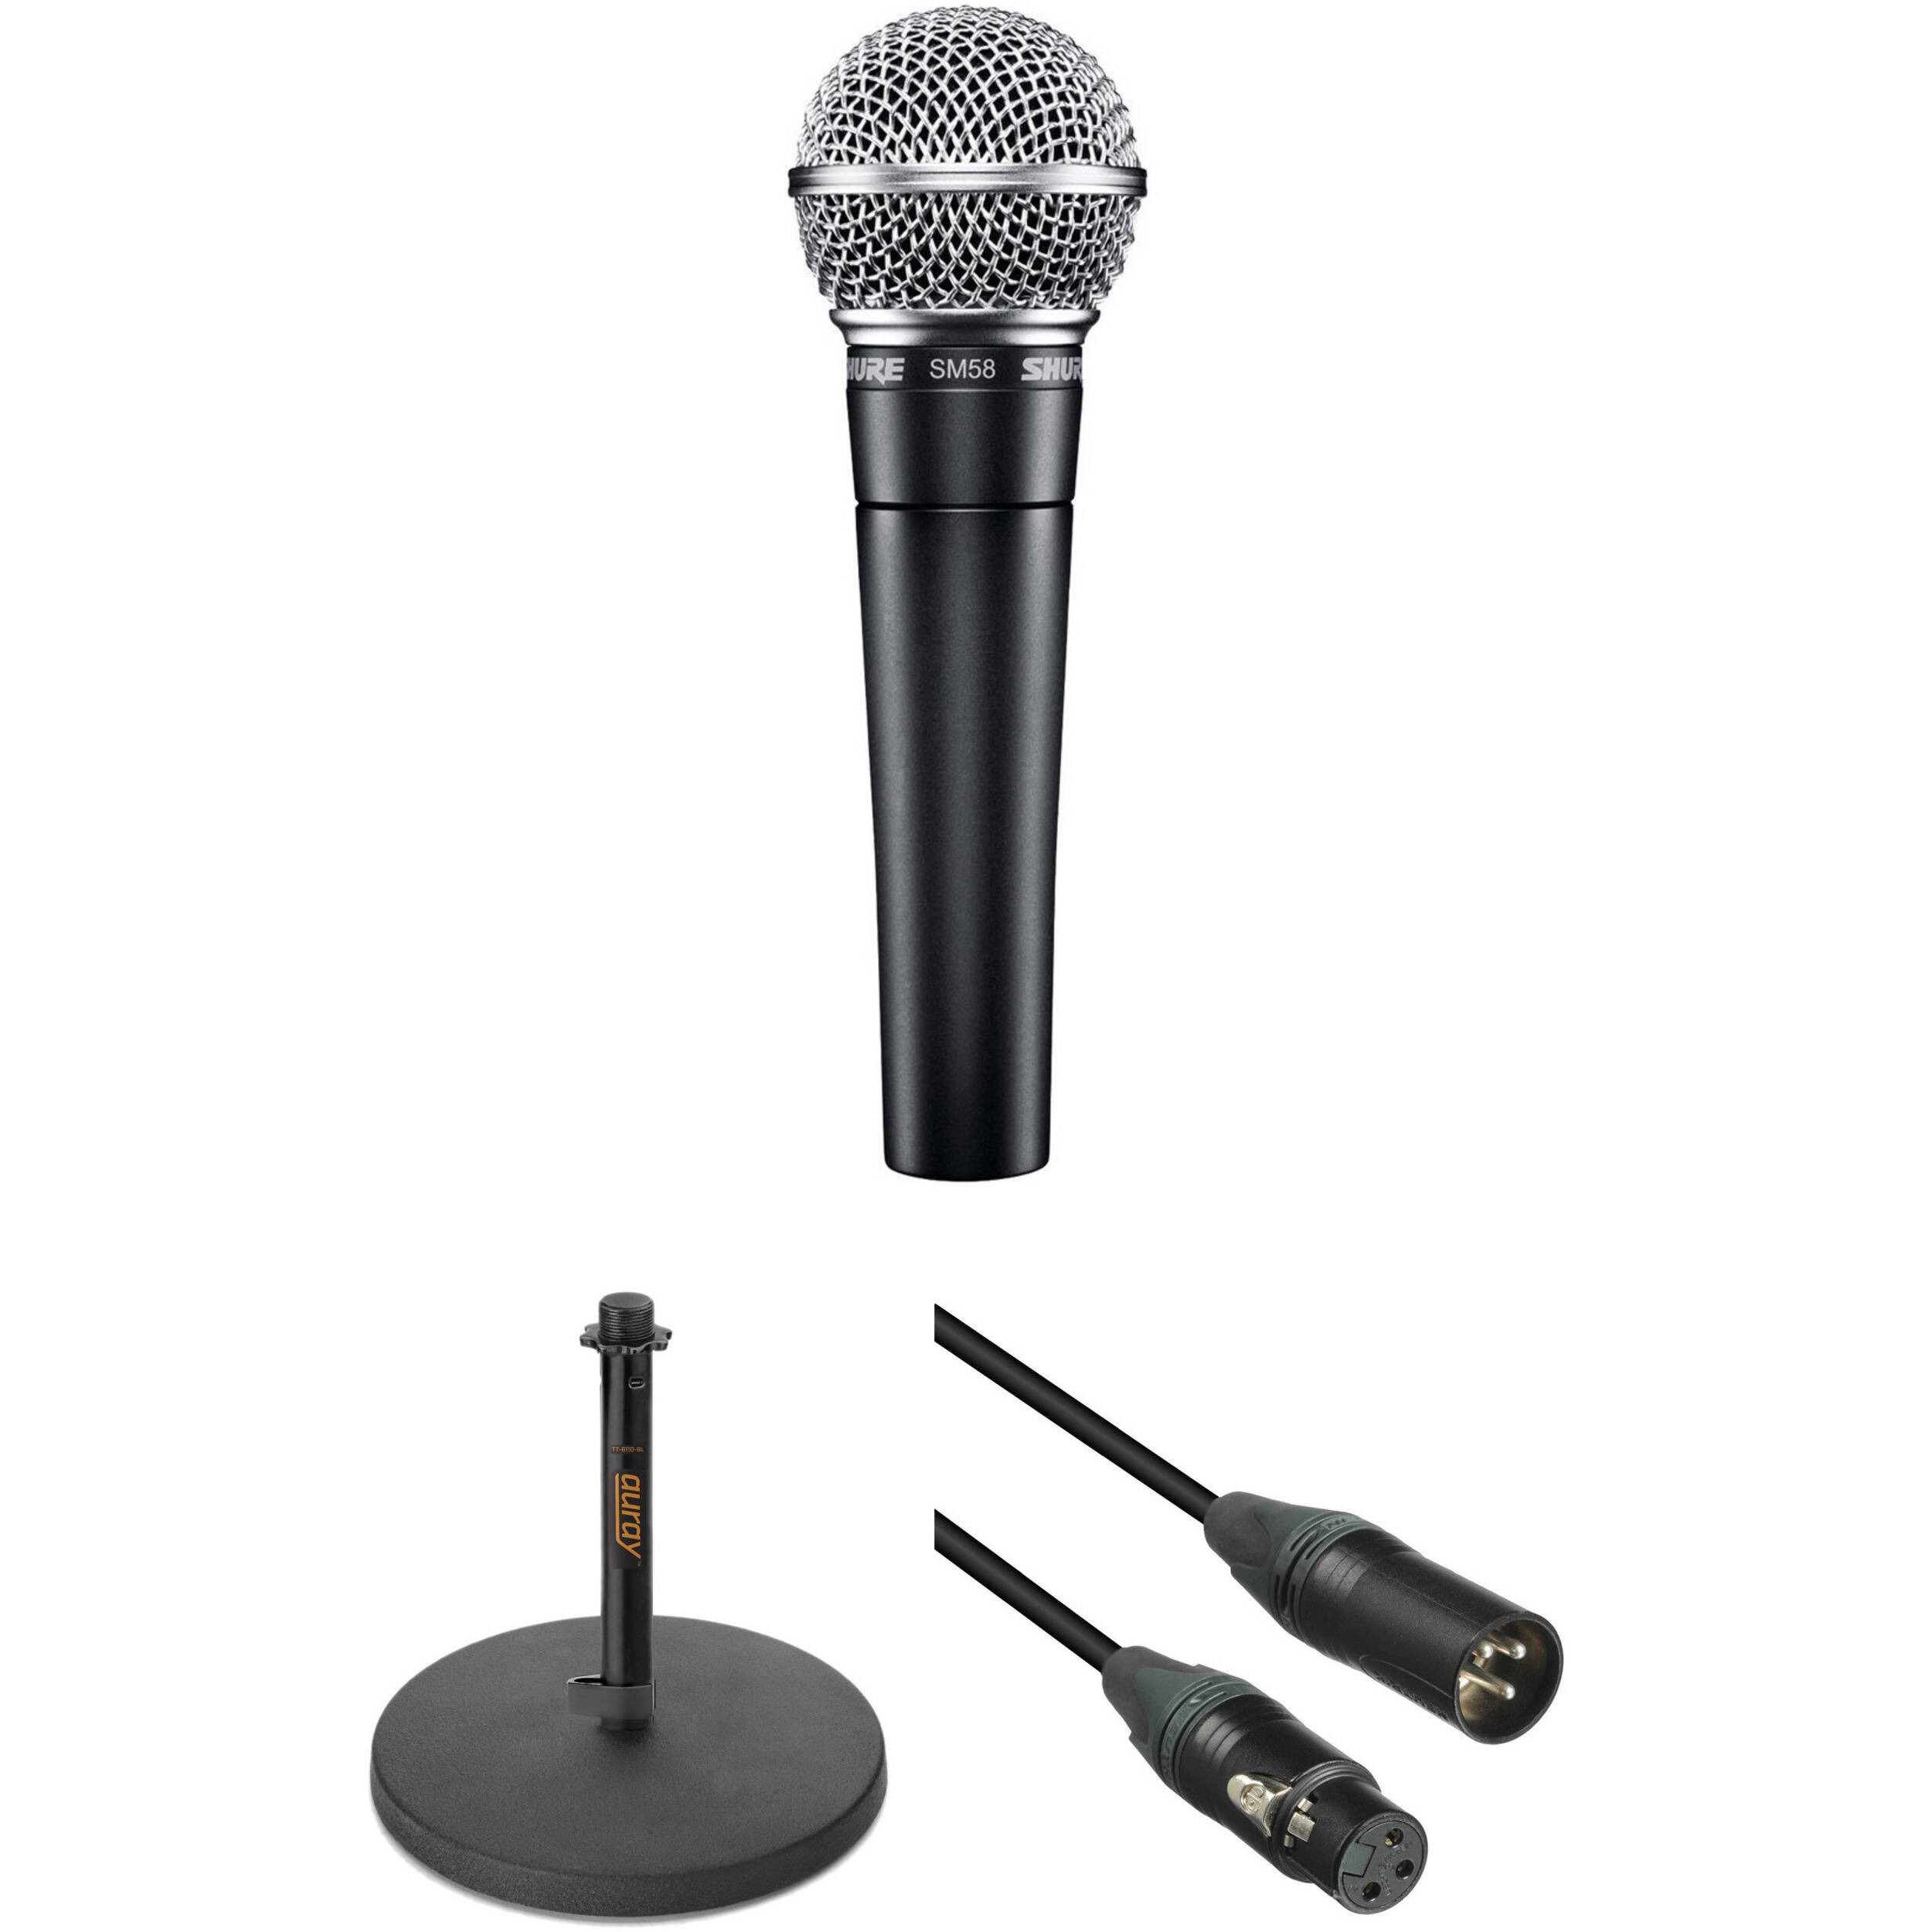 shure sm58 dynamic voice over microphone kit b h photo video. Black Bedroom Furniture Sets. Home Design Ideas